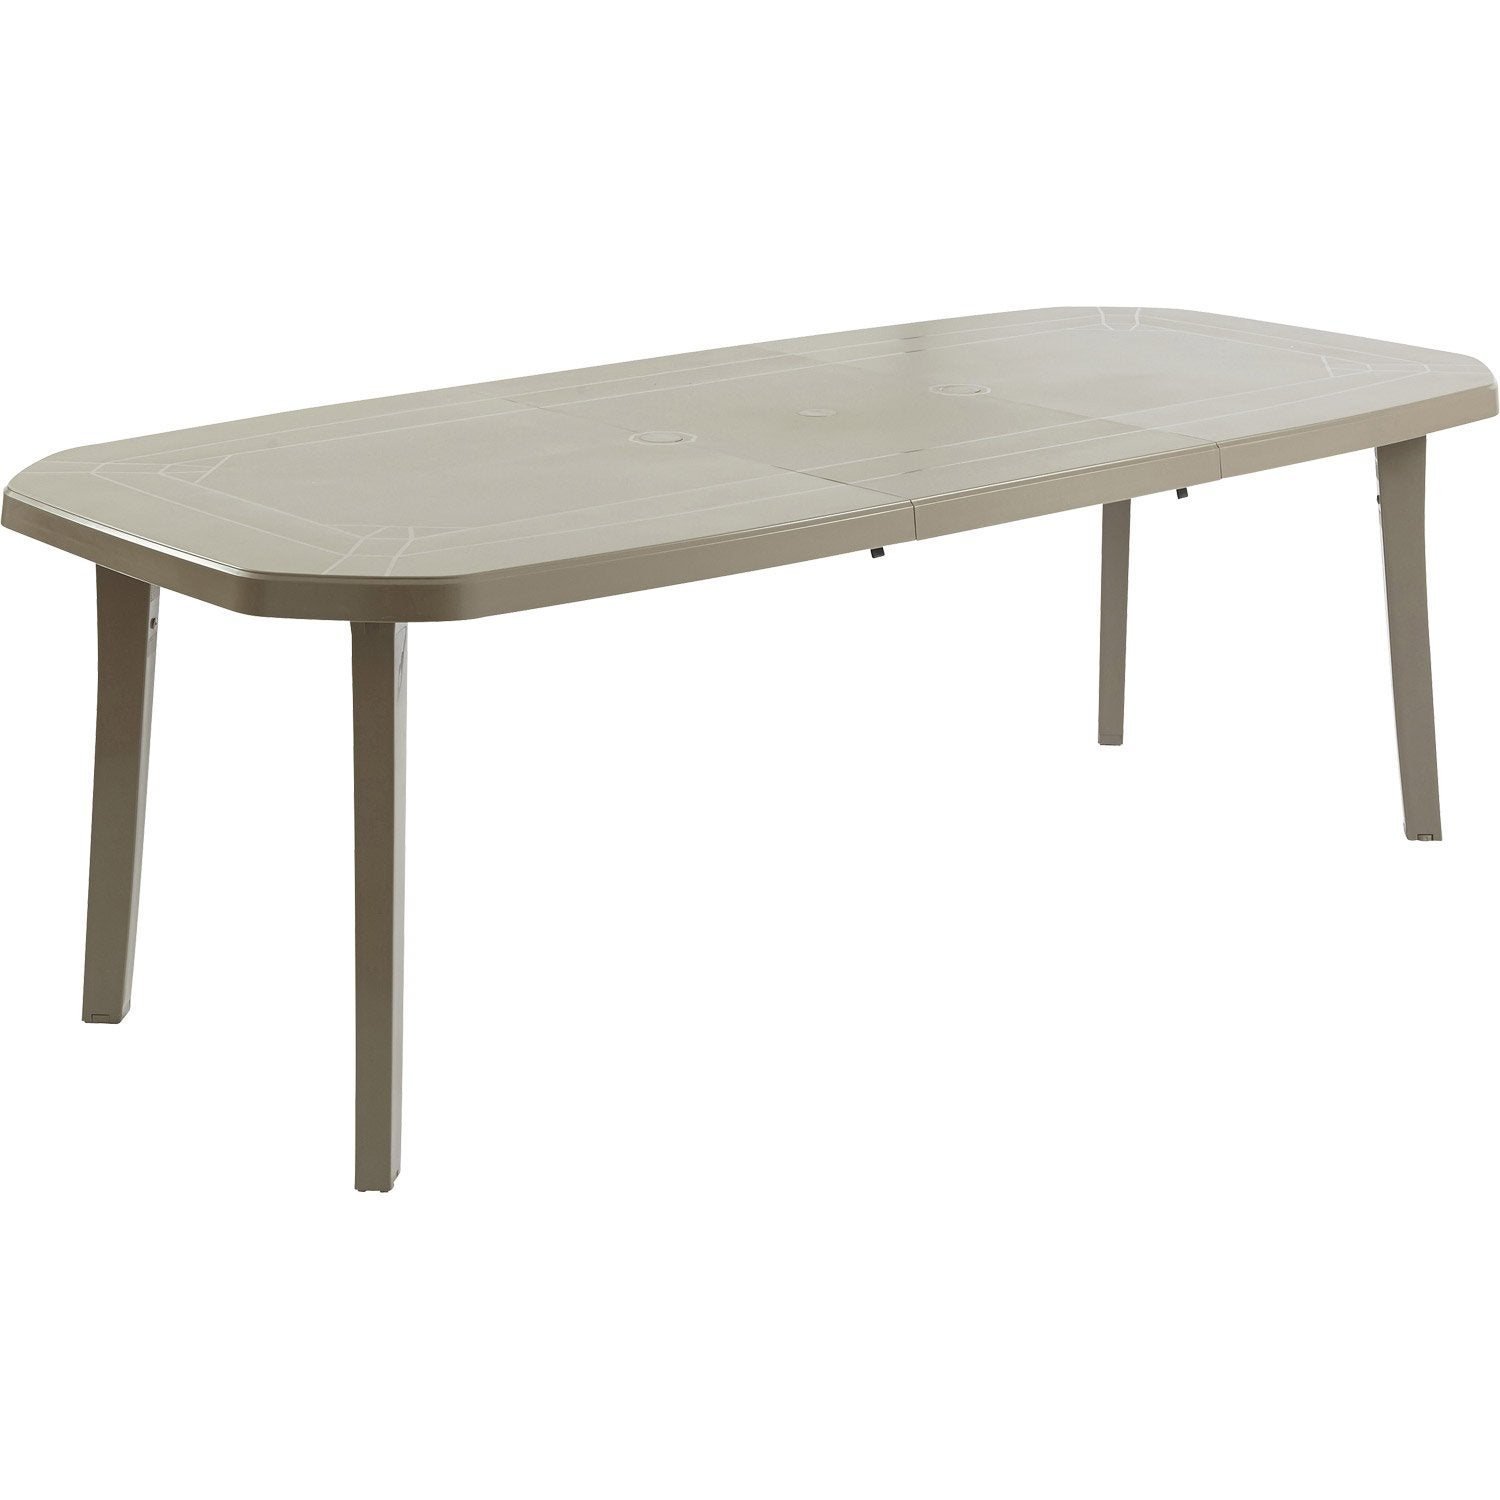 Table de jardin rectangulaire miami grosfillex leroy merlin for Table extensible leroy merlin